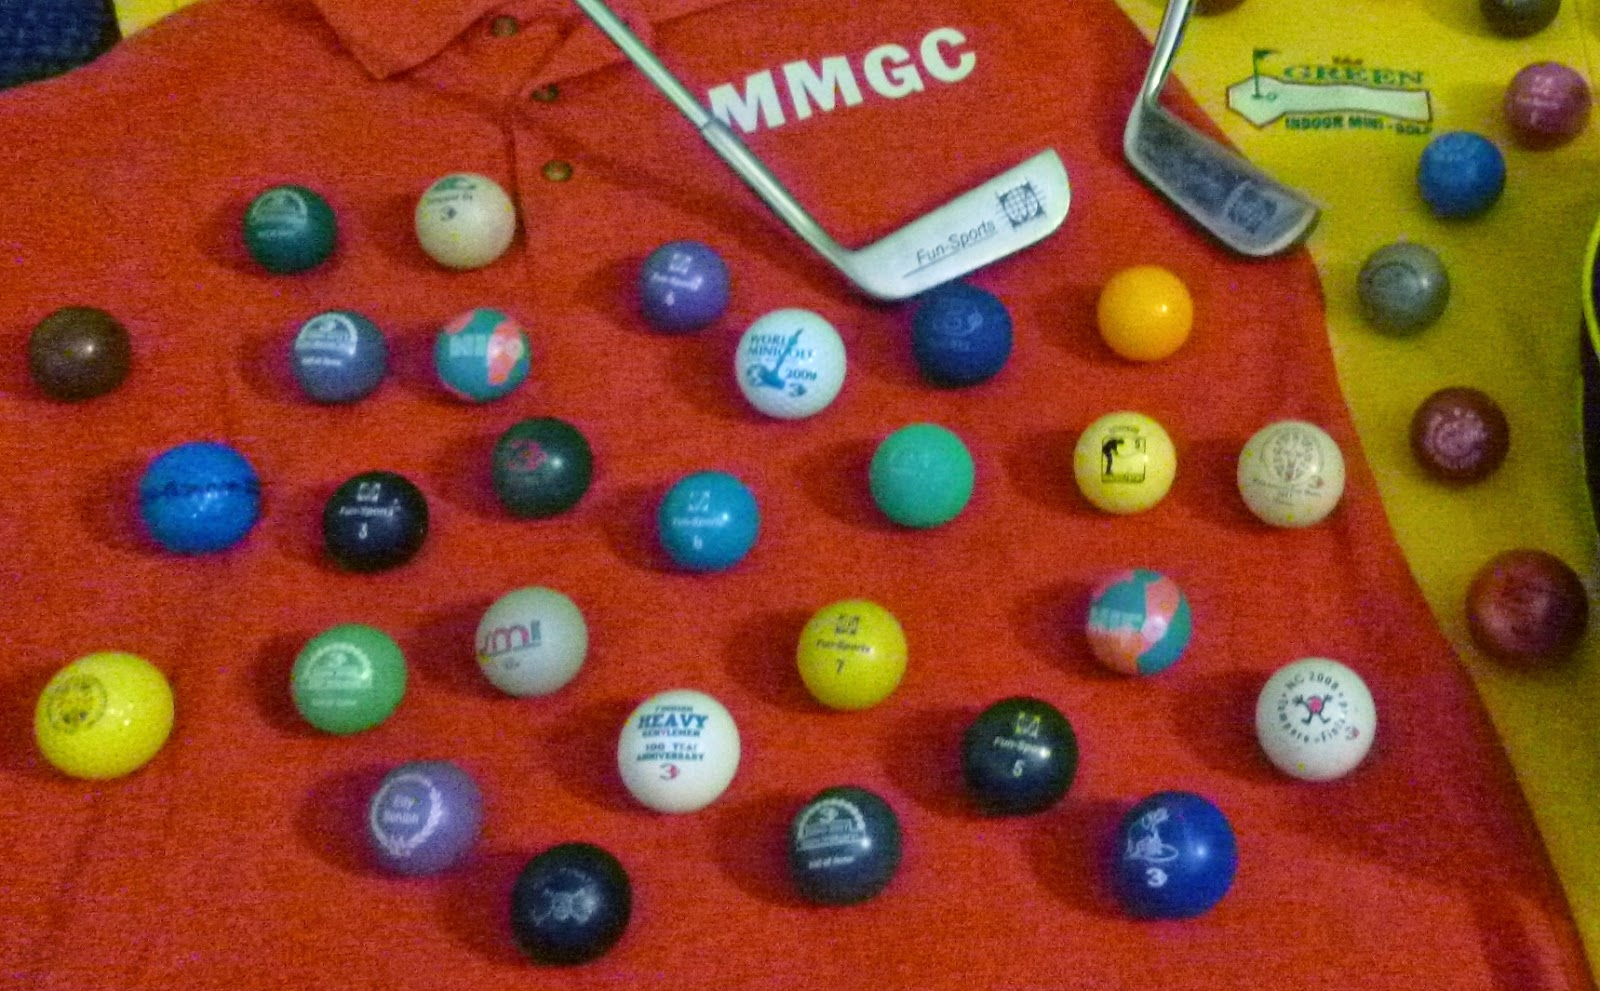 A selection of minigolf sport balls I took to a recent tournament weekend in Hastings